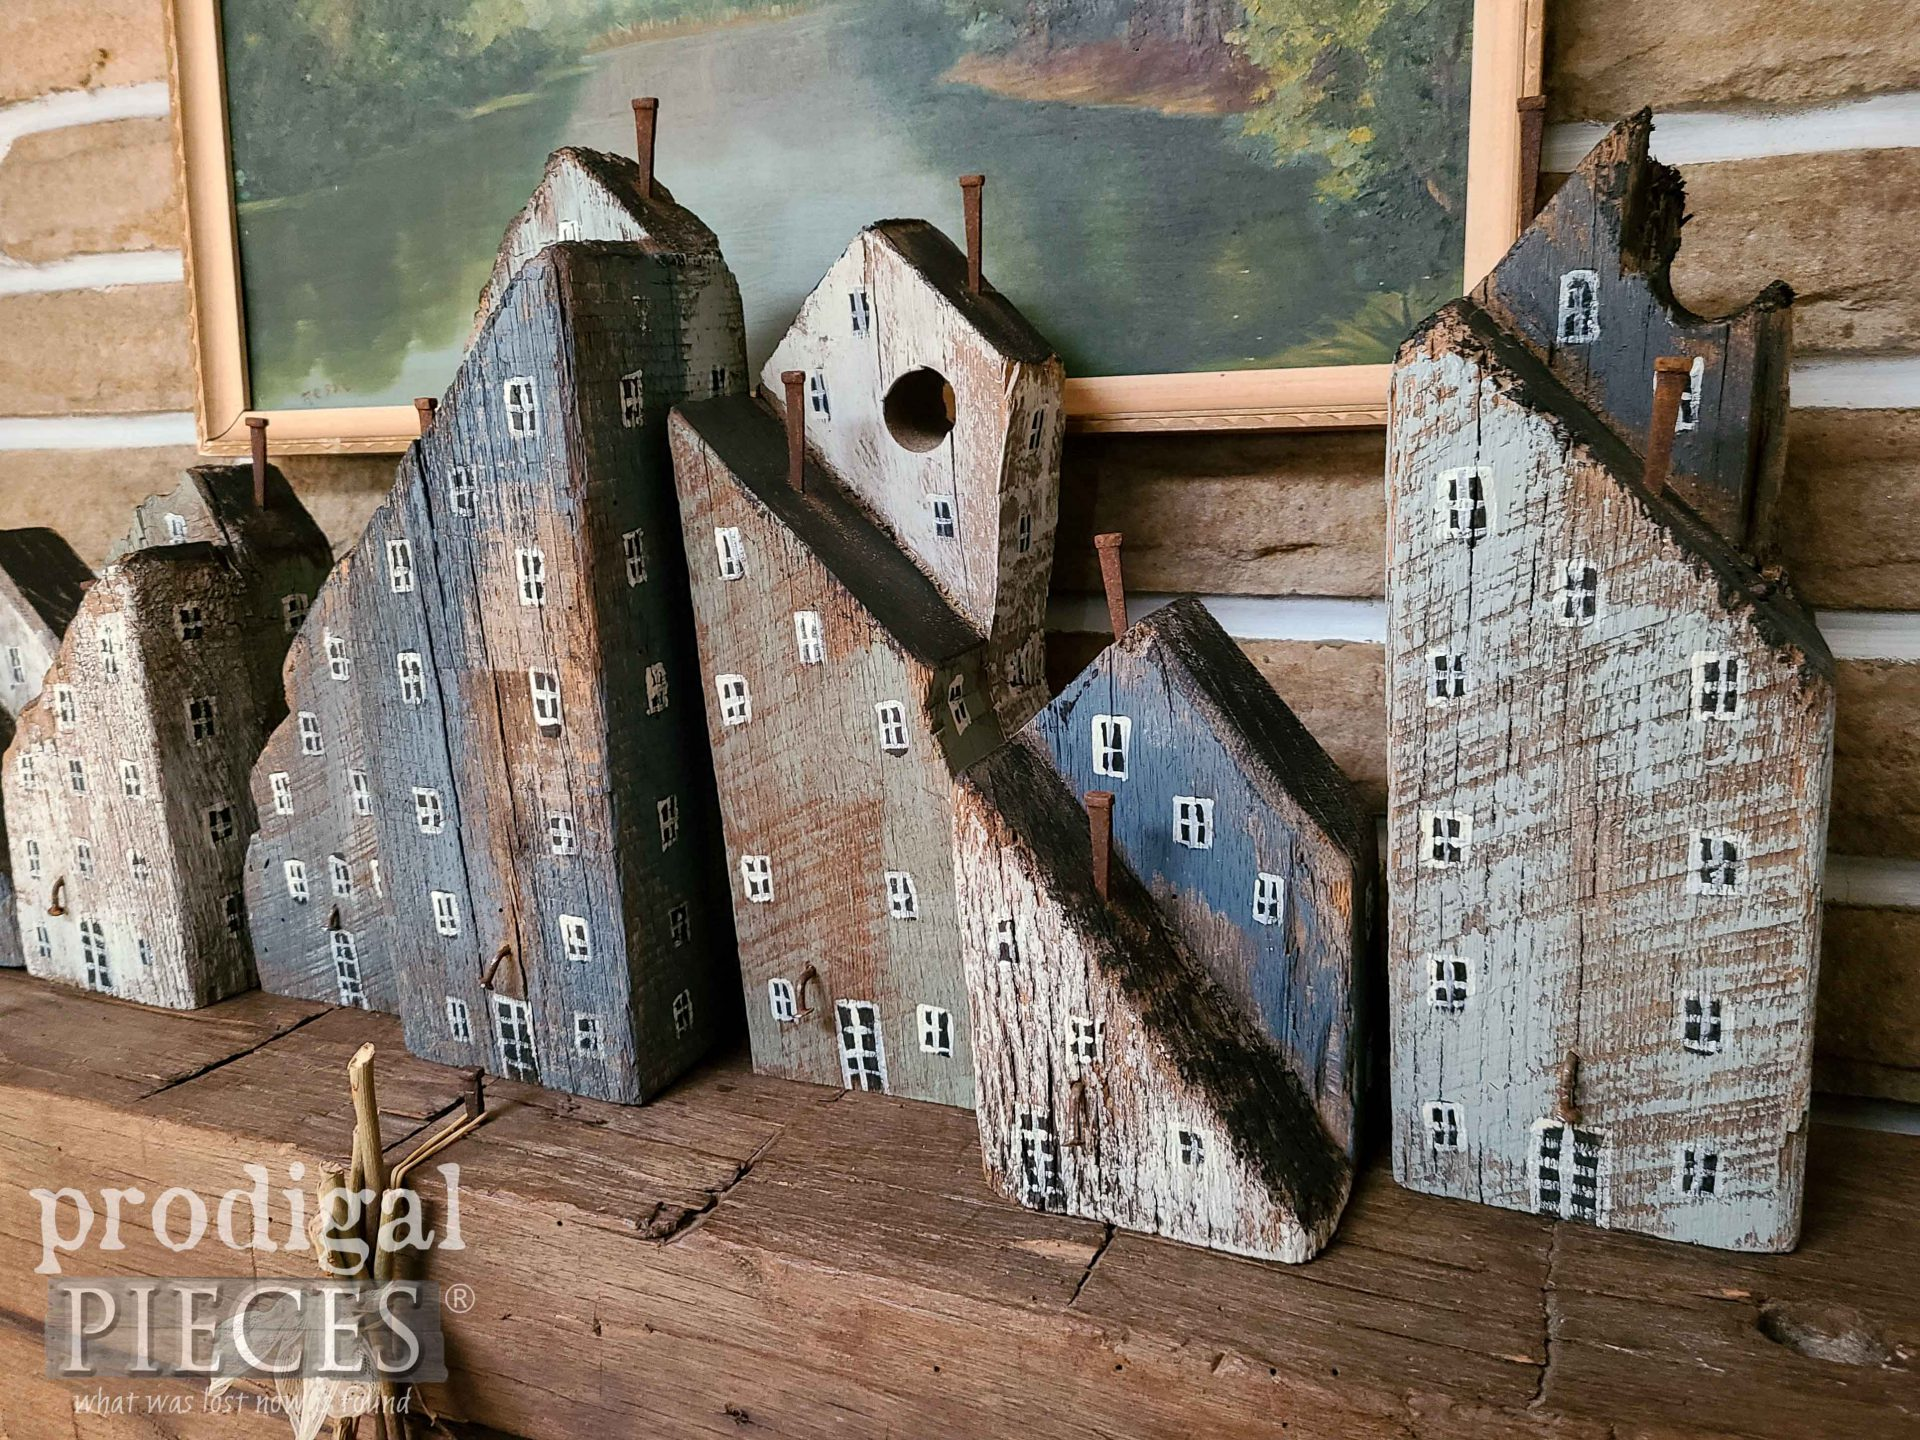 Rustic Reclaimed Wood Block Houses by Larissa of Prodigal Pieces | prodigalpieces.com #prodigalpieces #reclaimed #crafts #diy